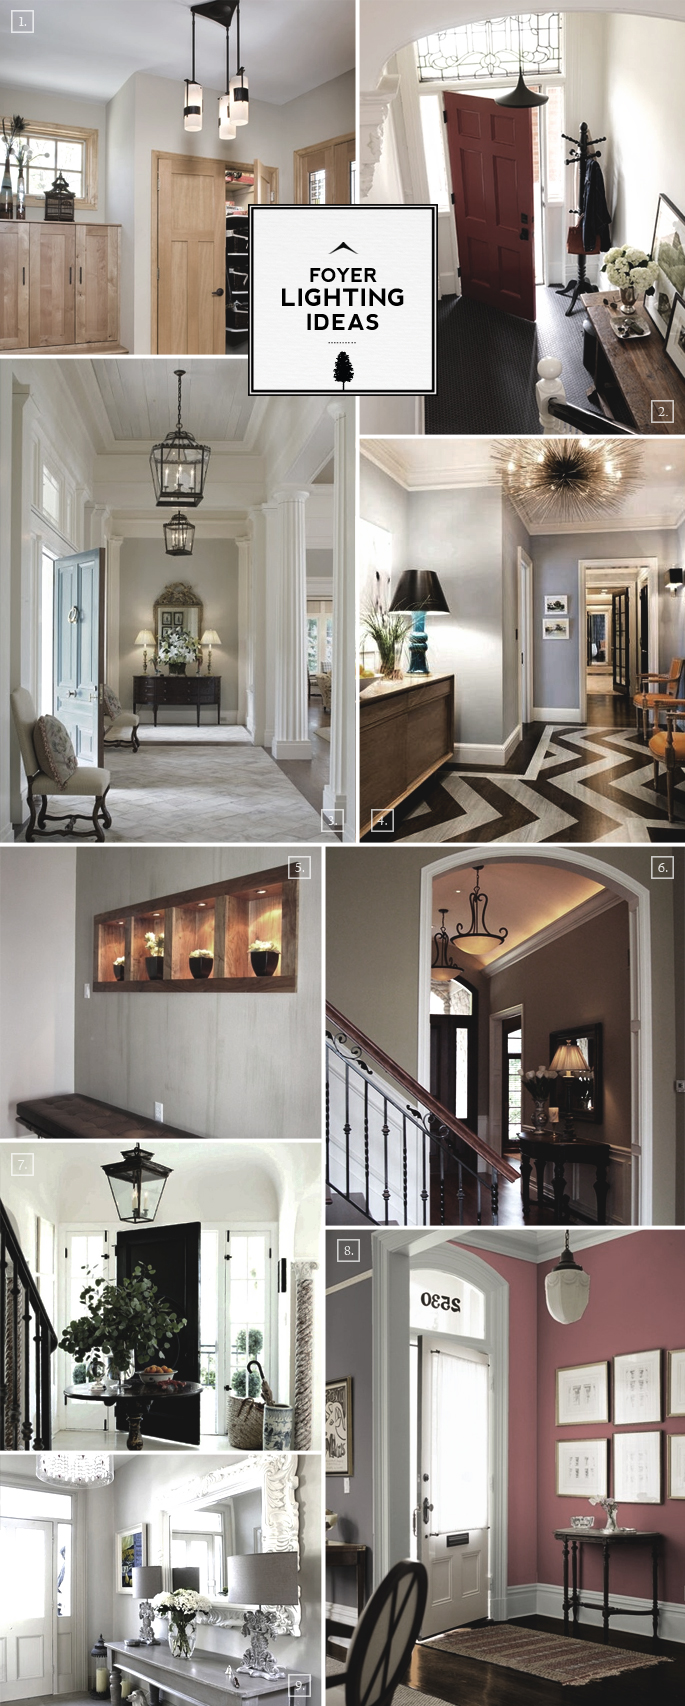 Large Foyer Lighting Ideas : Entry foyer lighting ideas for large and small spaces